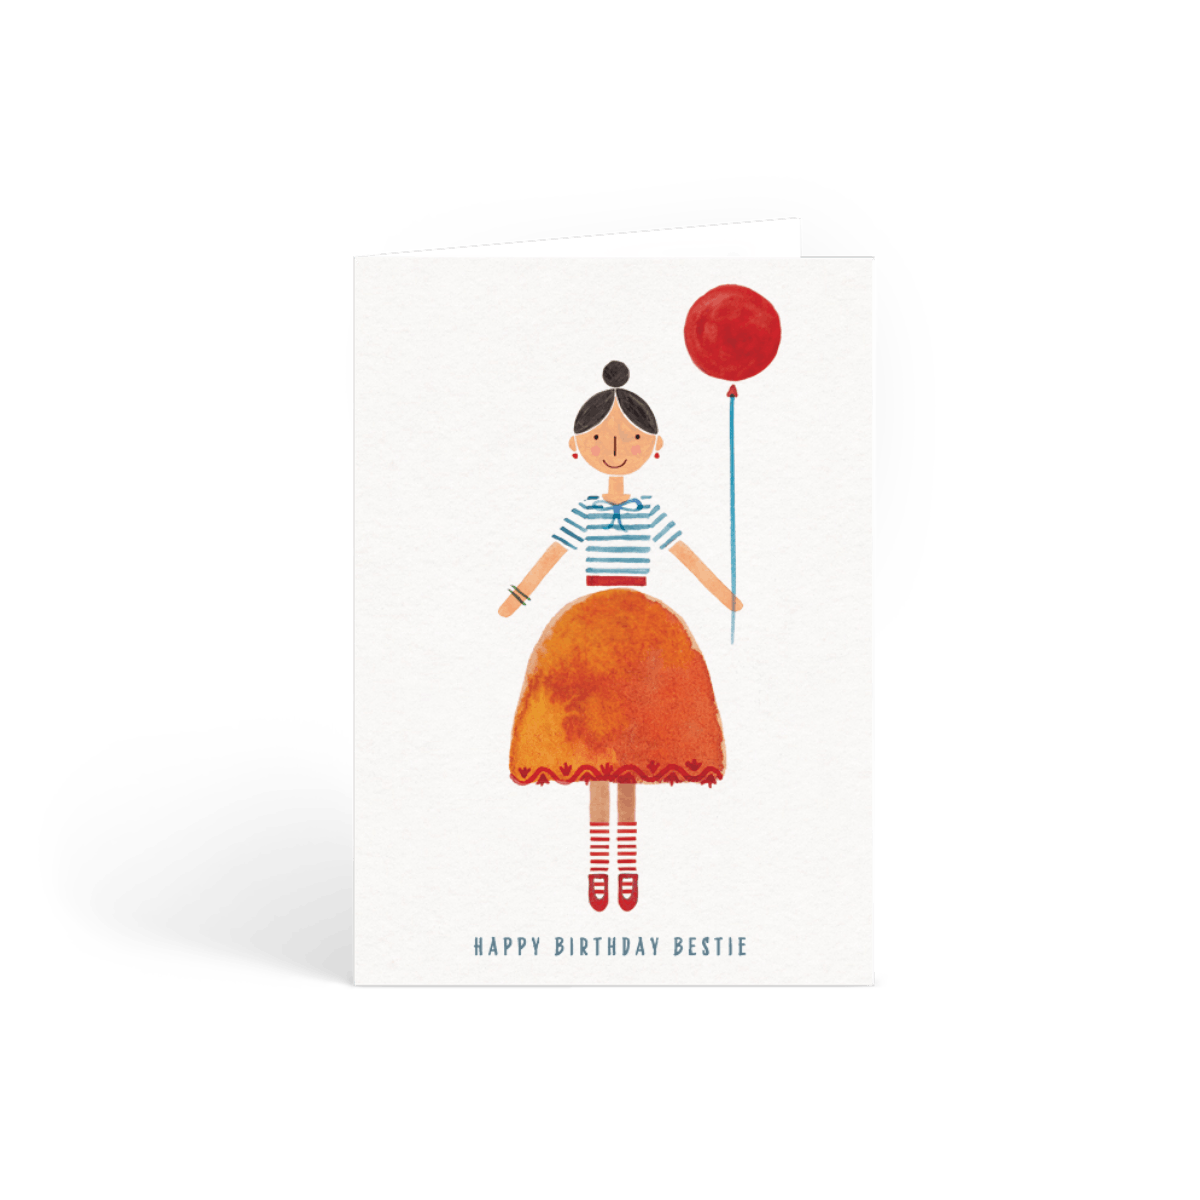 Https%3a%2f%2fwww.papier.com%2fproduct image%2f49007%2f2%2fa lady and her balloon 12055 avant 1542379995.png?ixlib=rb 1.1